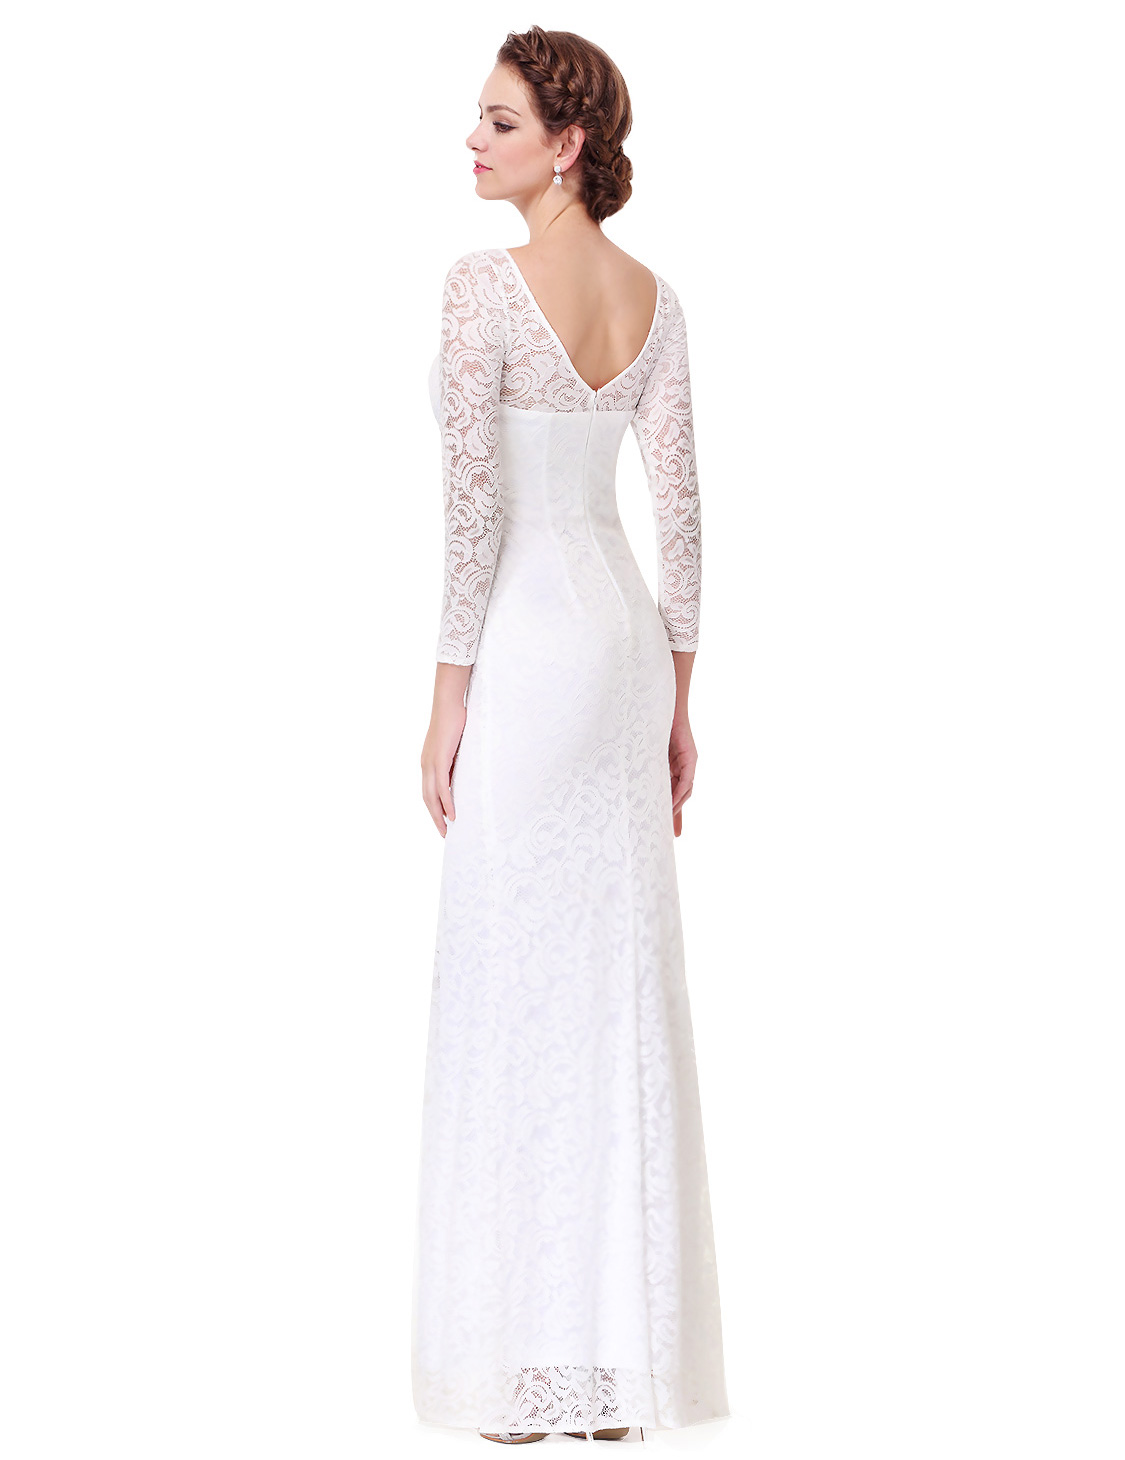 Long sleeve white wedding bridesmaid dress evening party for Ever pretty wedding dresses